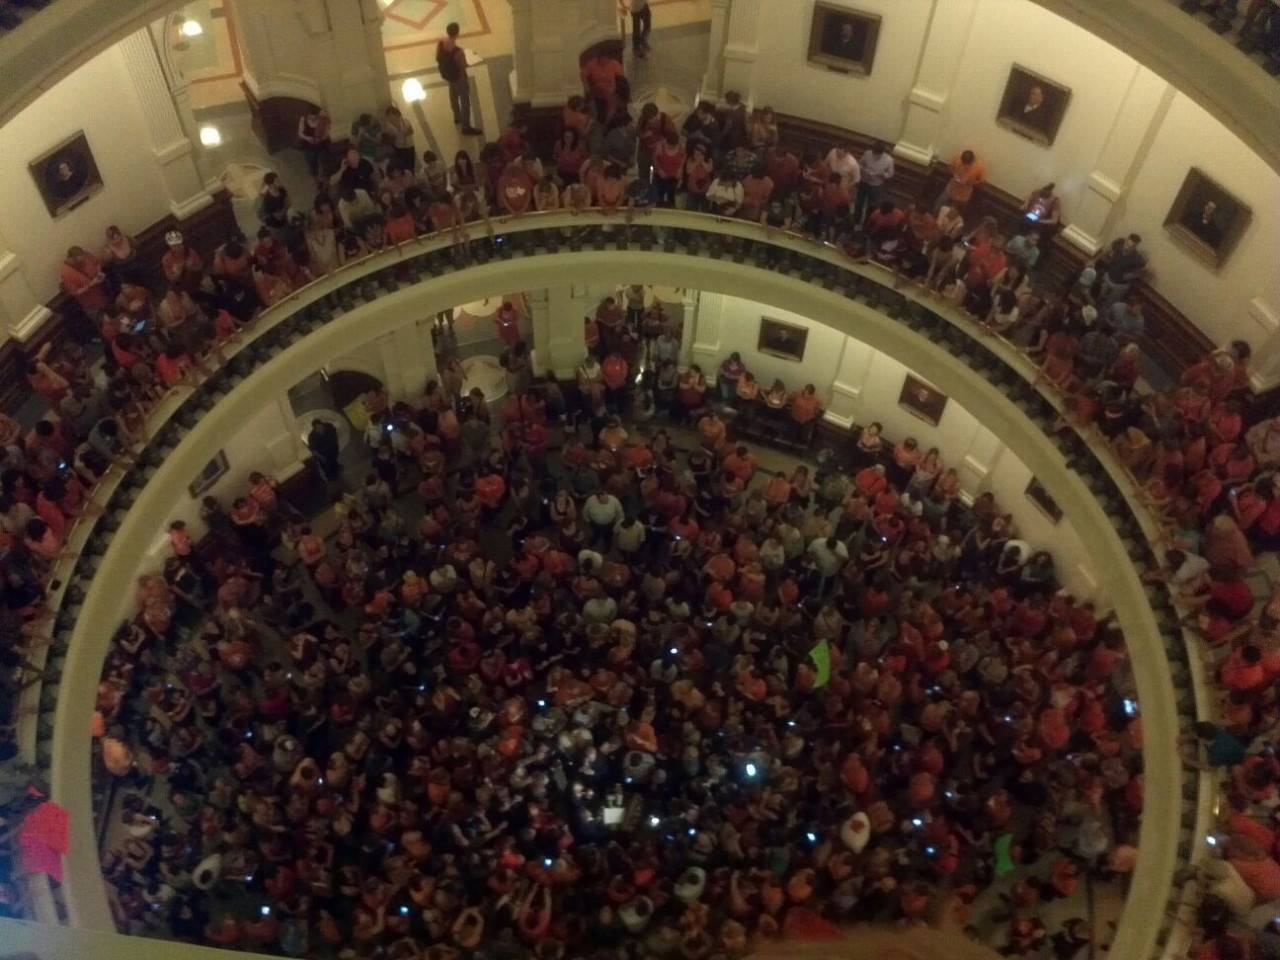 A Personal Account of the 6/25 Texas Filibuster